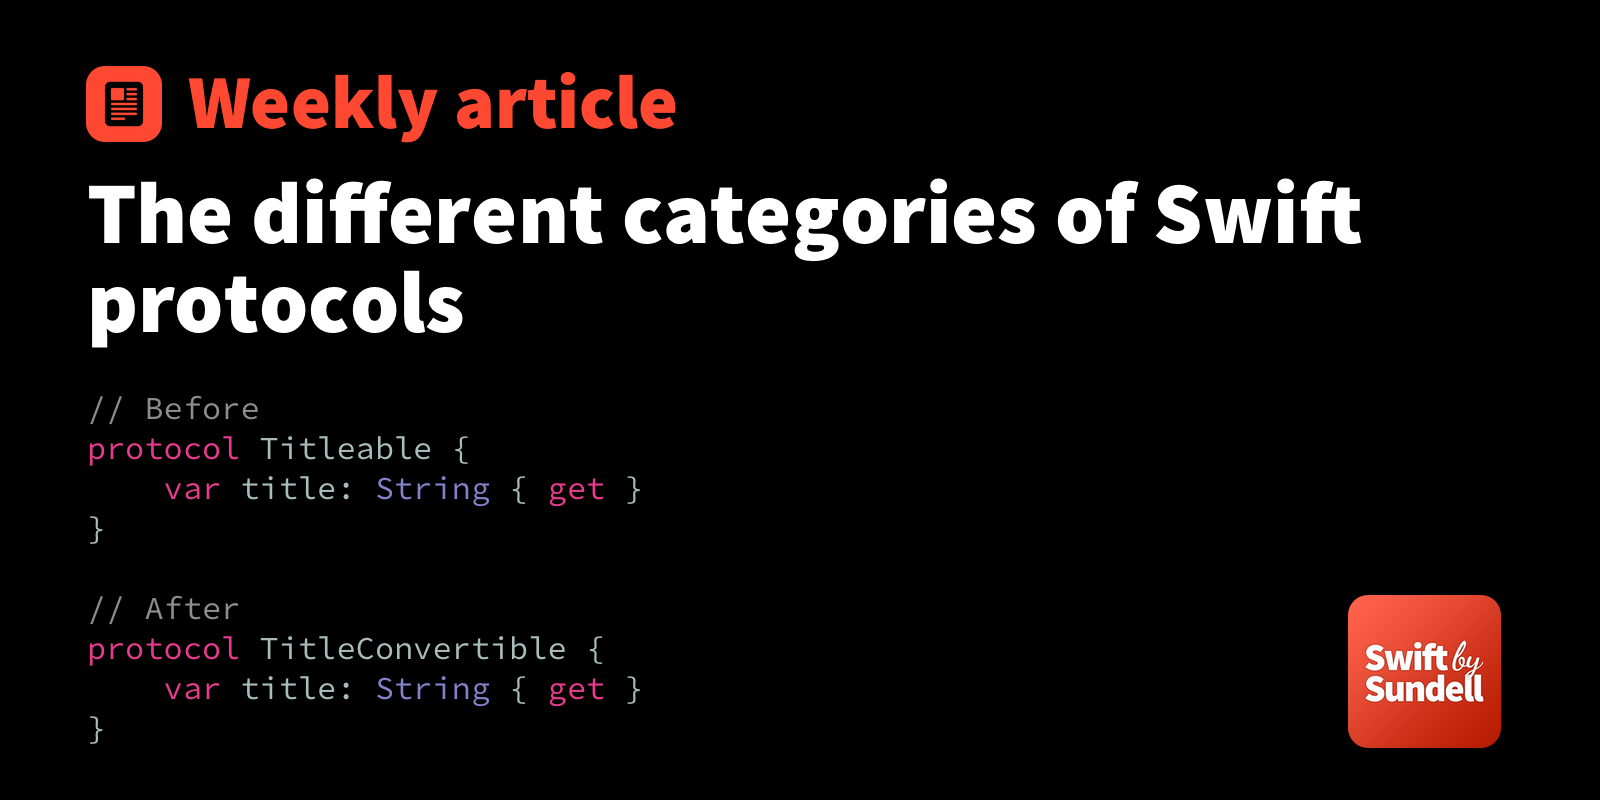 The different categories of Swift protocols